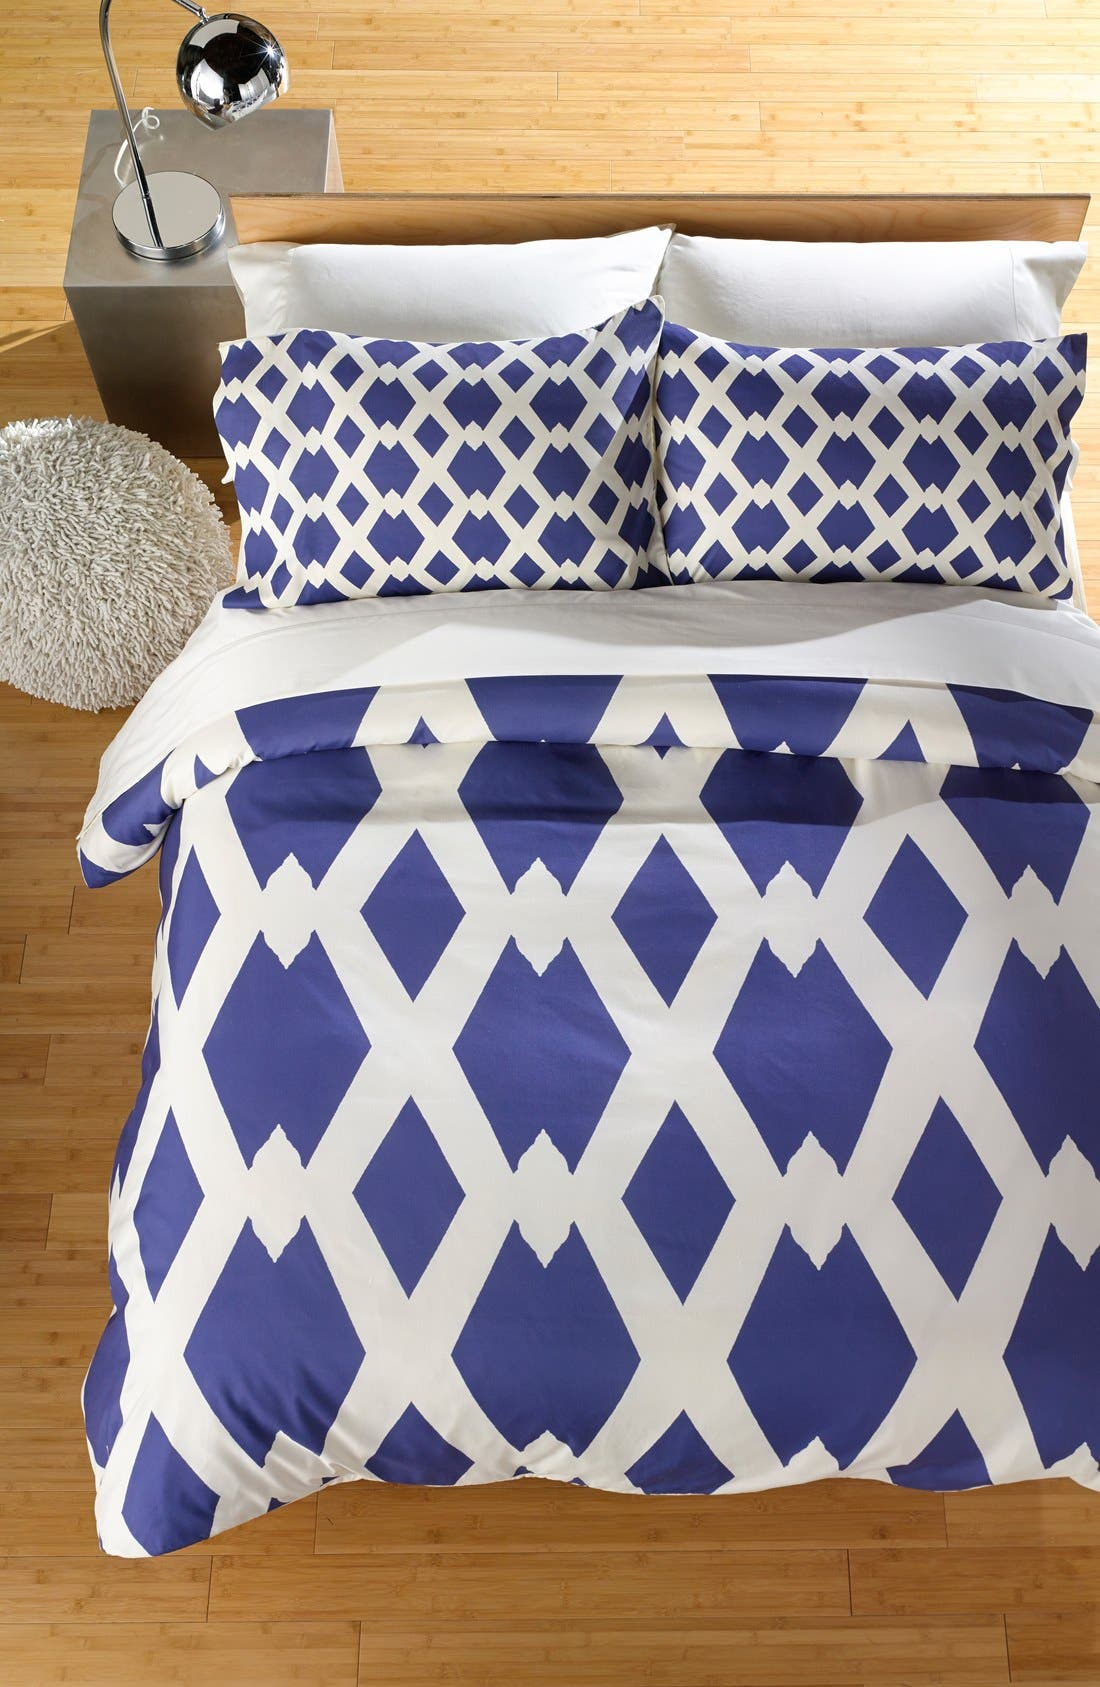 DENY Designs Daddy Lattice Duvet Cover & Sham Set